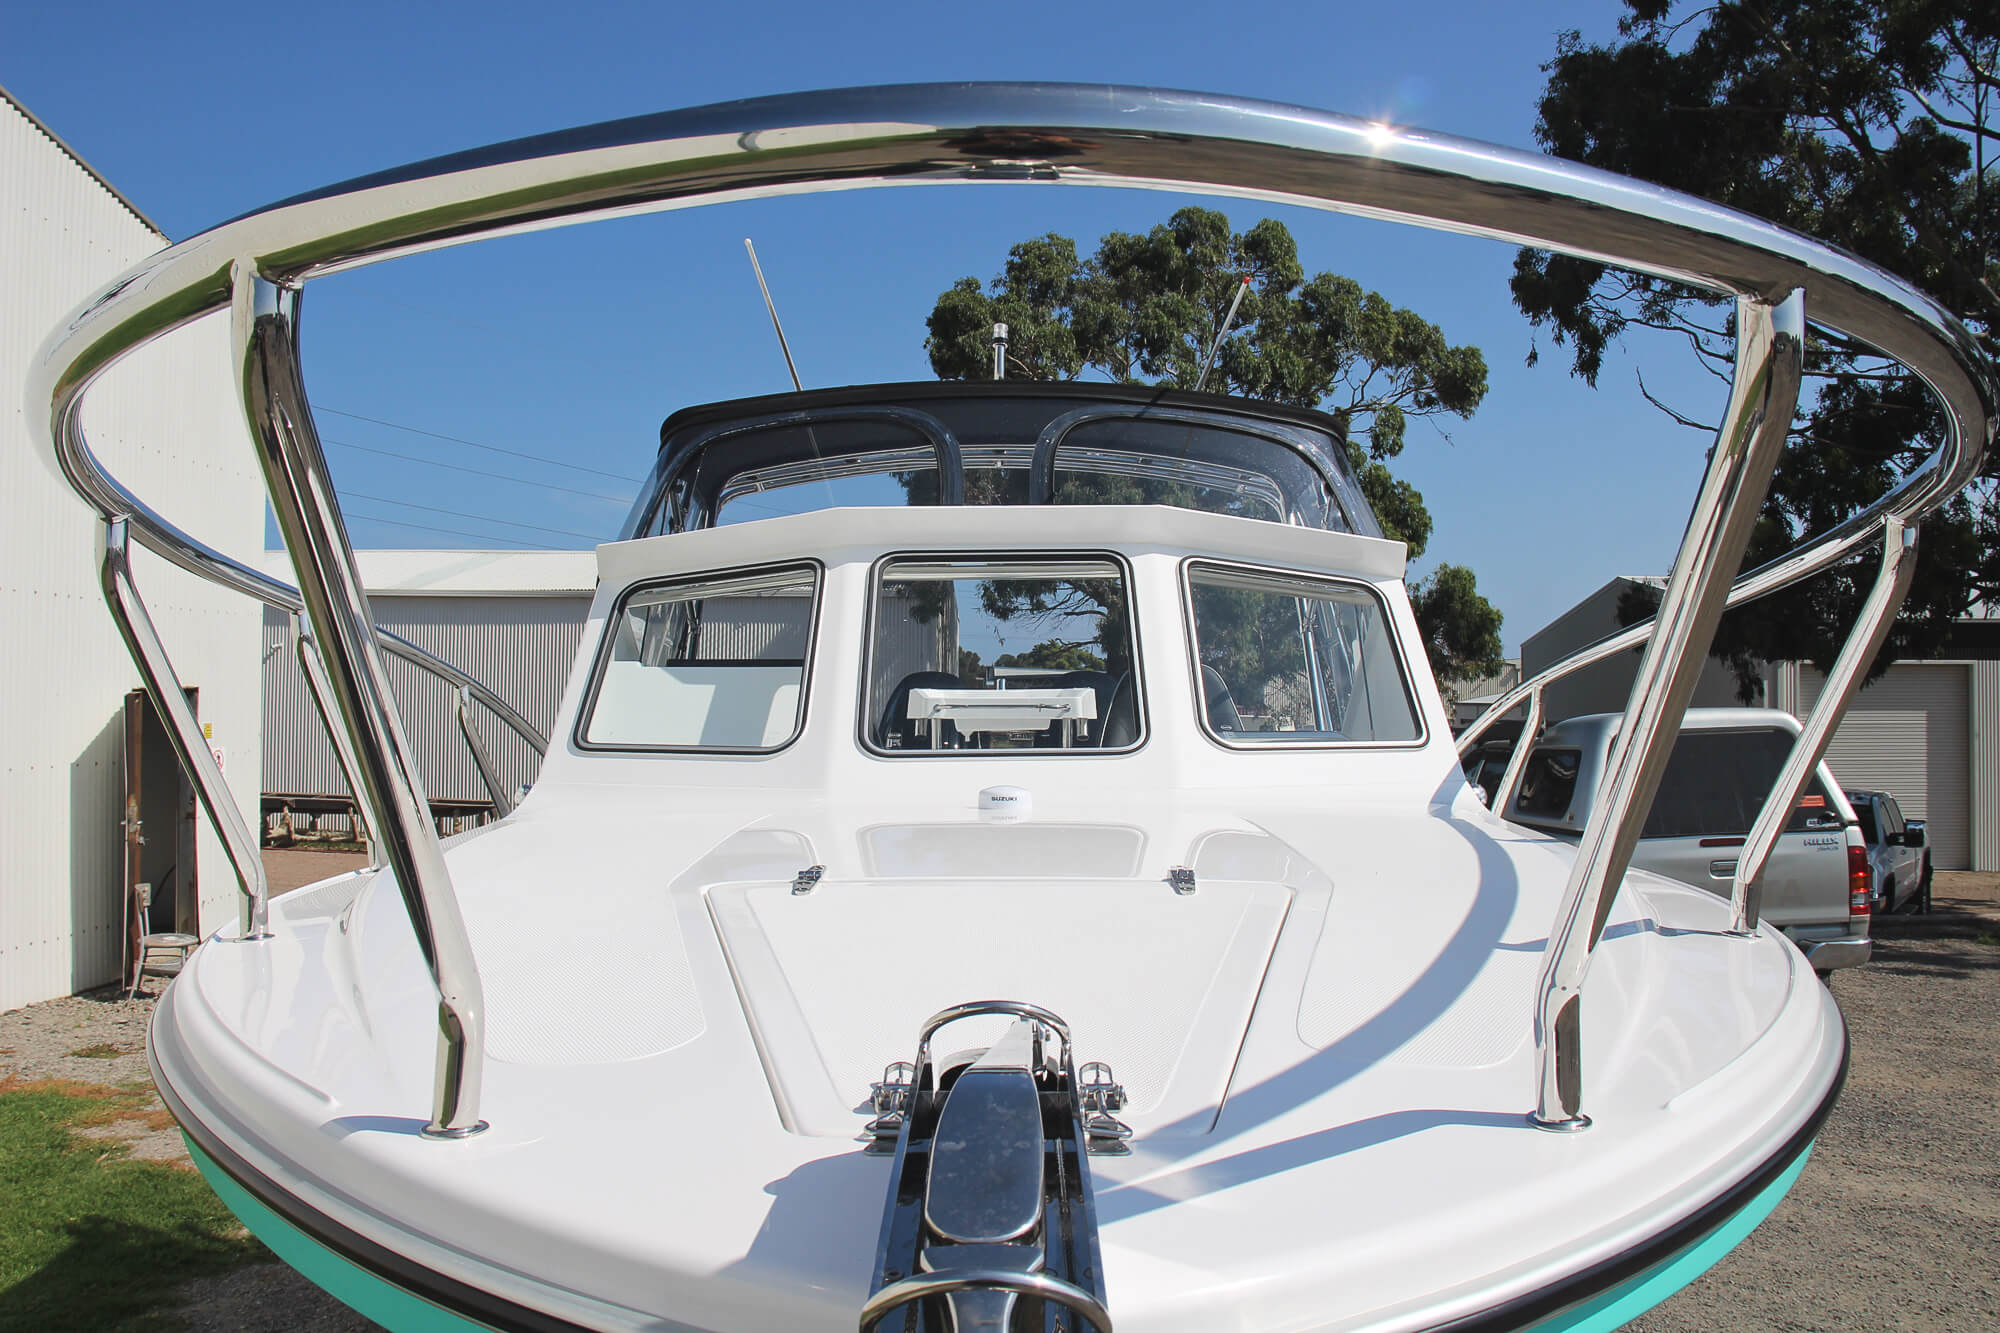 Stainless bow rail, top deck & wavebreaker on Edencraft 233 Formula Classic